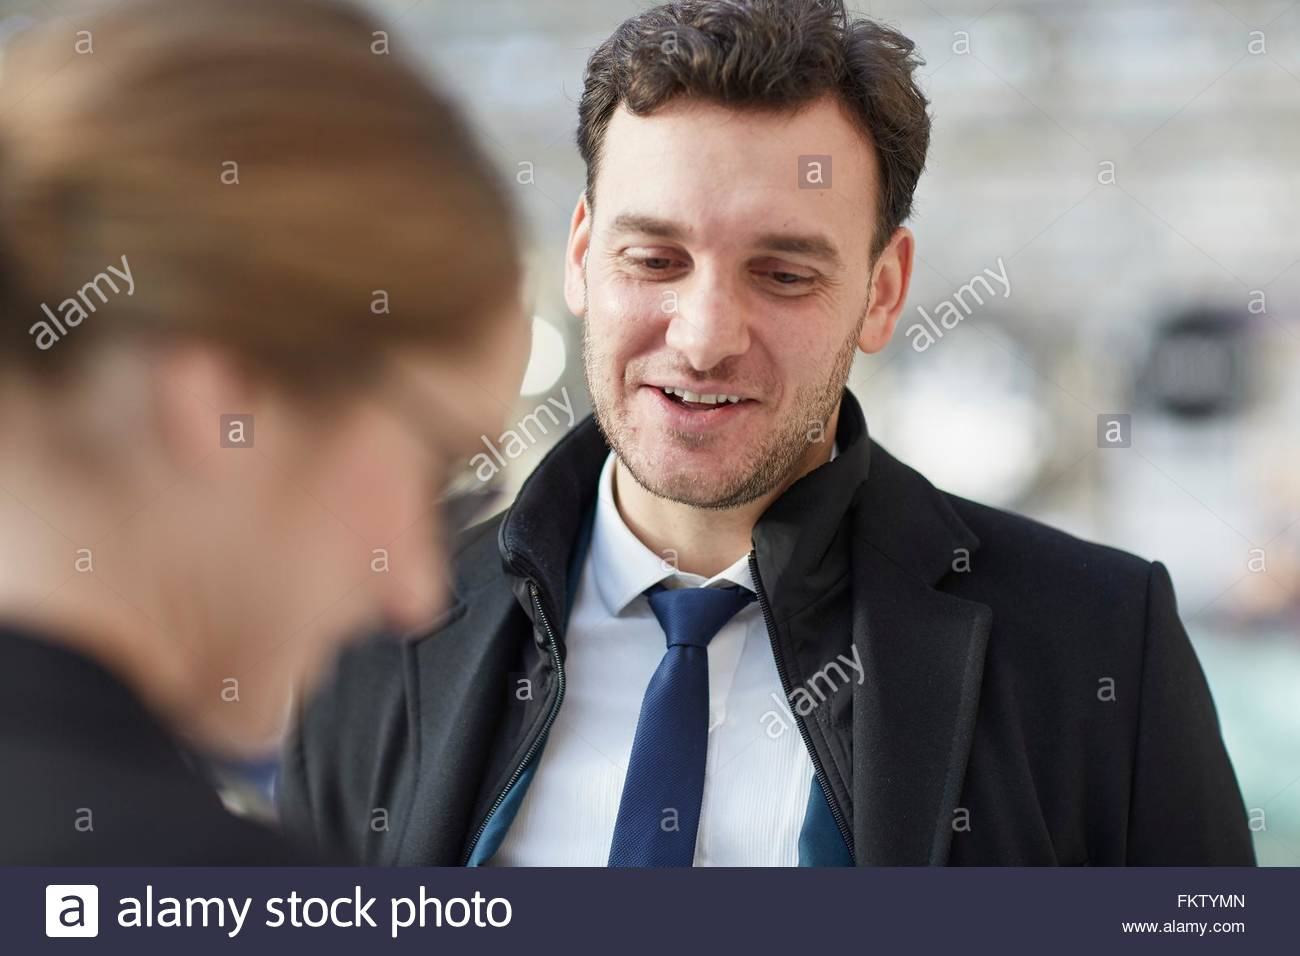 Business man talking to colleague looking down smiling - Stock Image